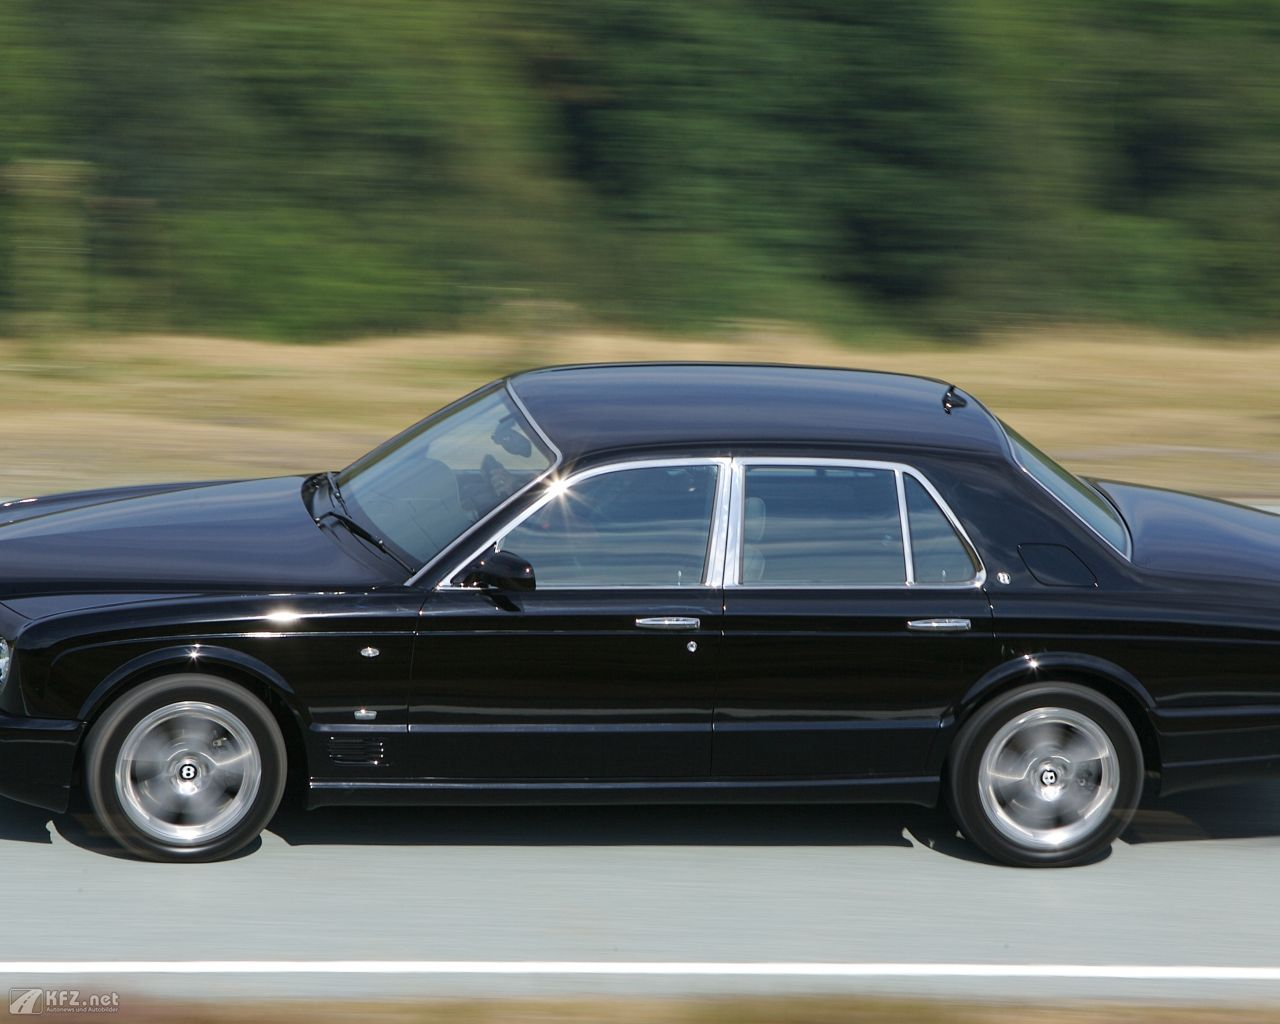 bentley-arnage-1280x1024-17